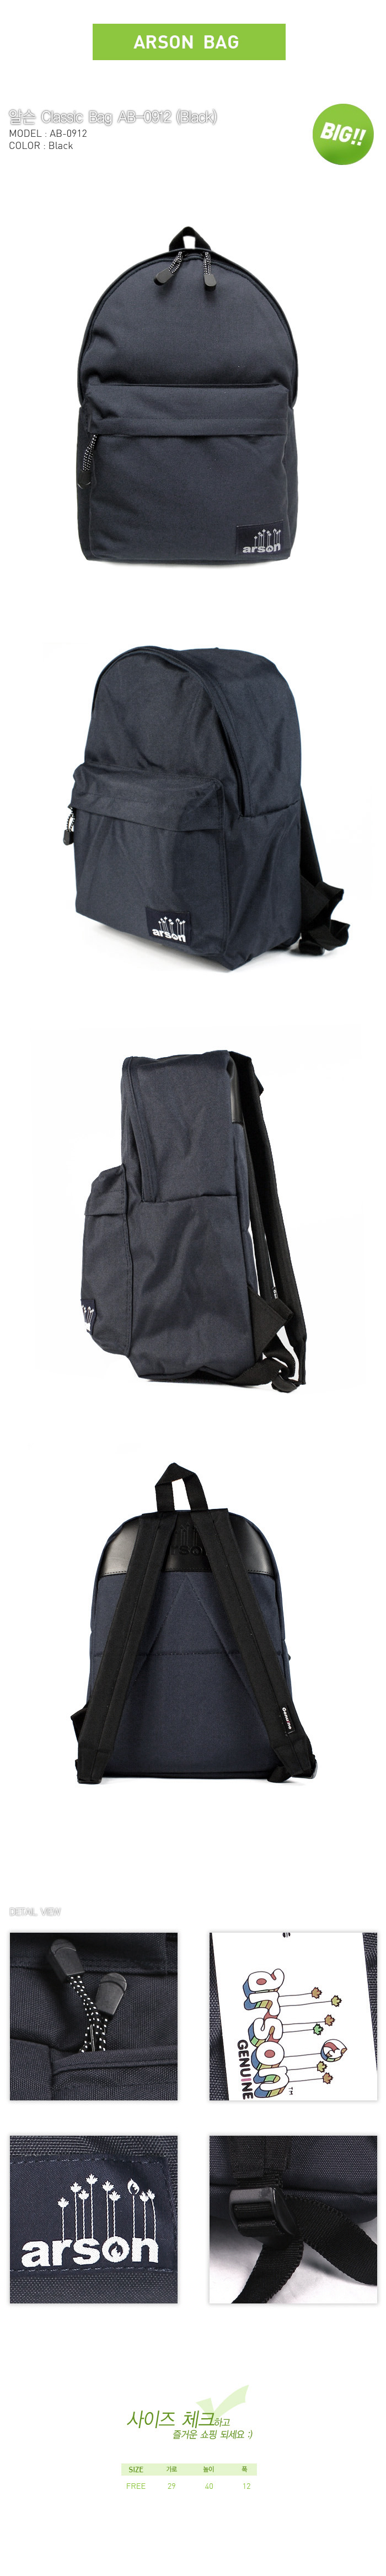 [ ARSON ] AB-0912 (Black)/Backpack School Bag